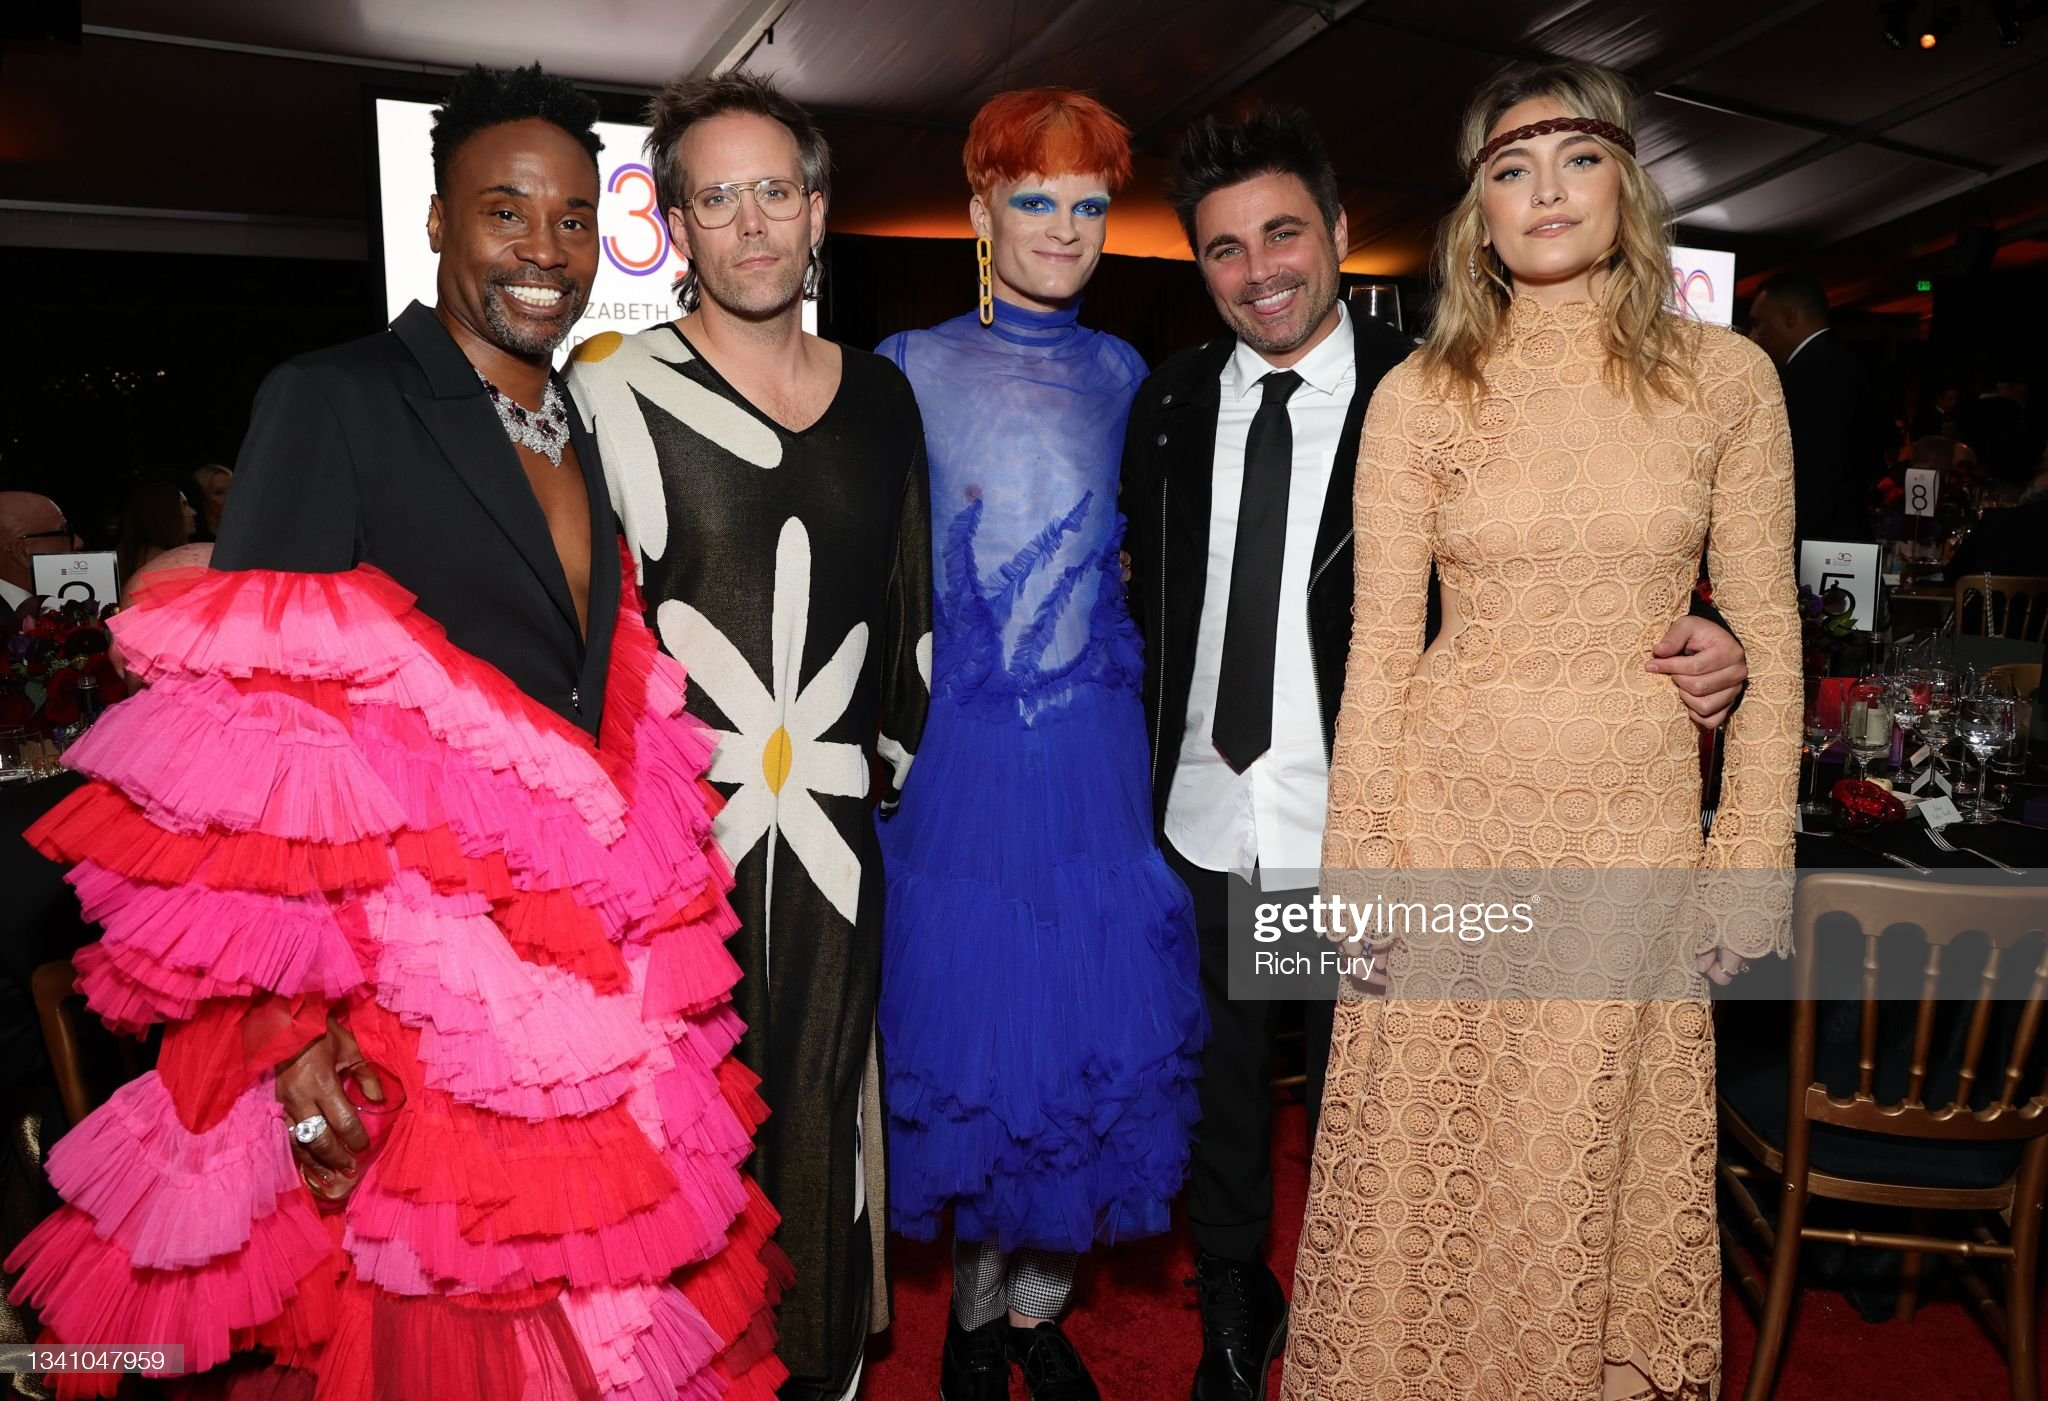 billy-porter-jake-wesley-rogers-paris-jackson-with-guests-during-the-picture-id1341047959